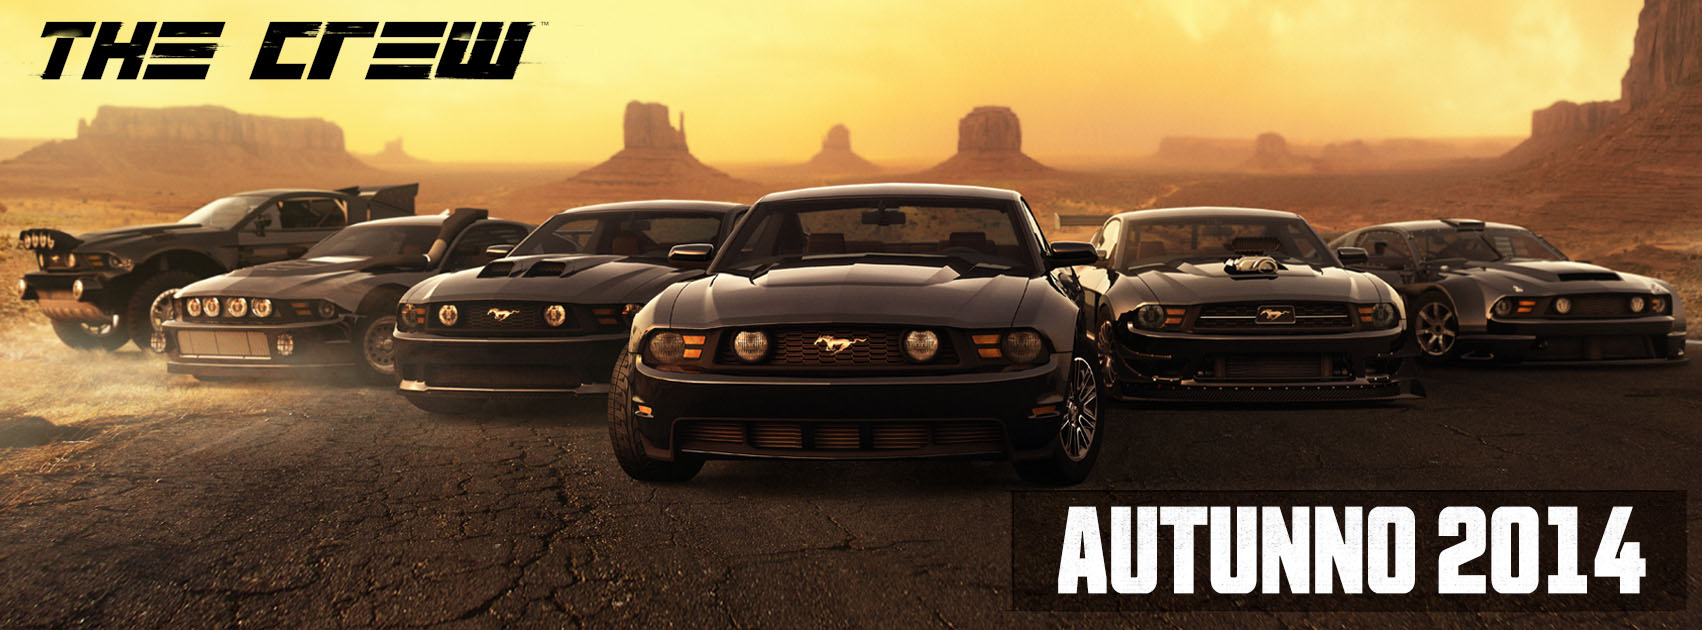 THECREW FB BANNER FALL 2014 IT